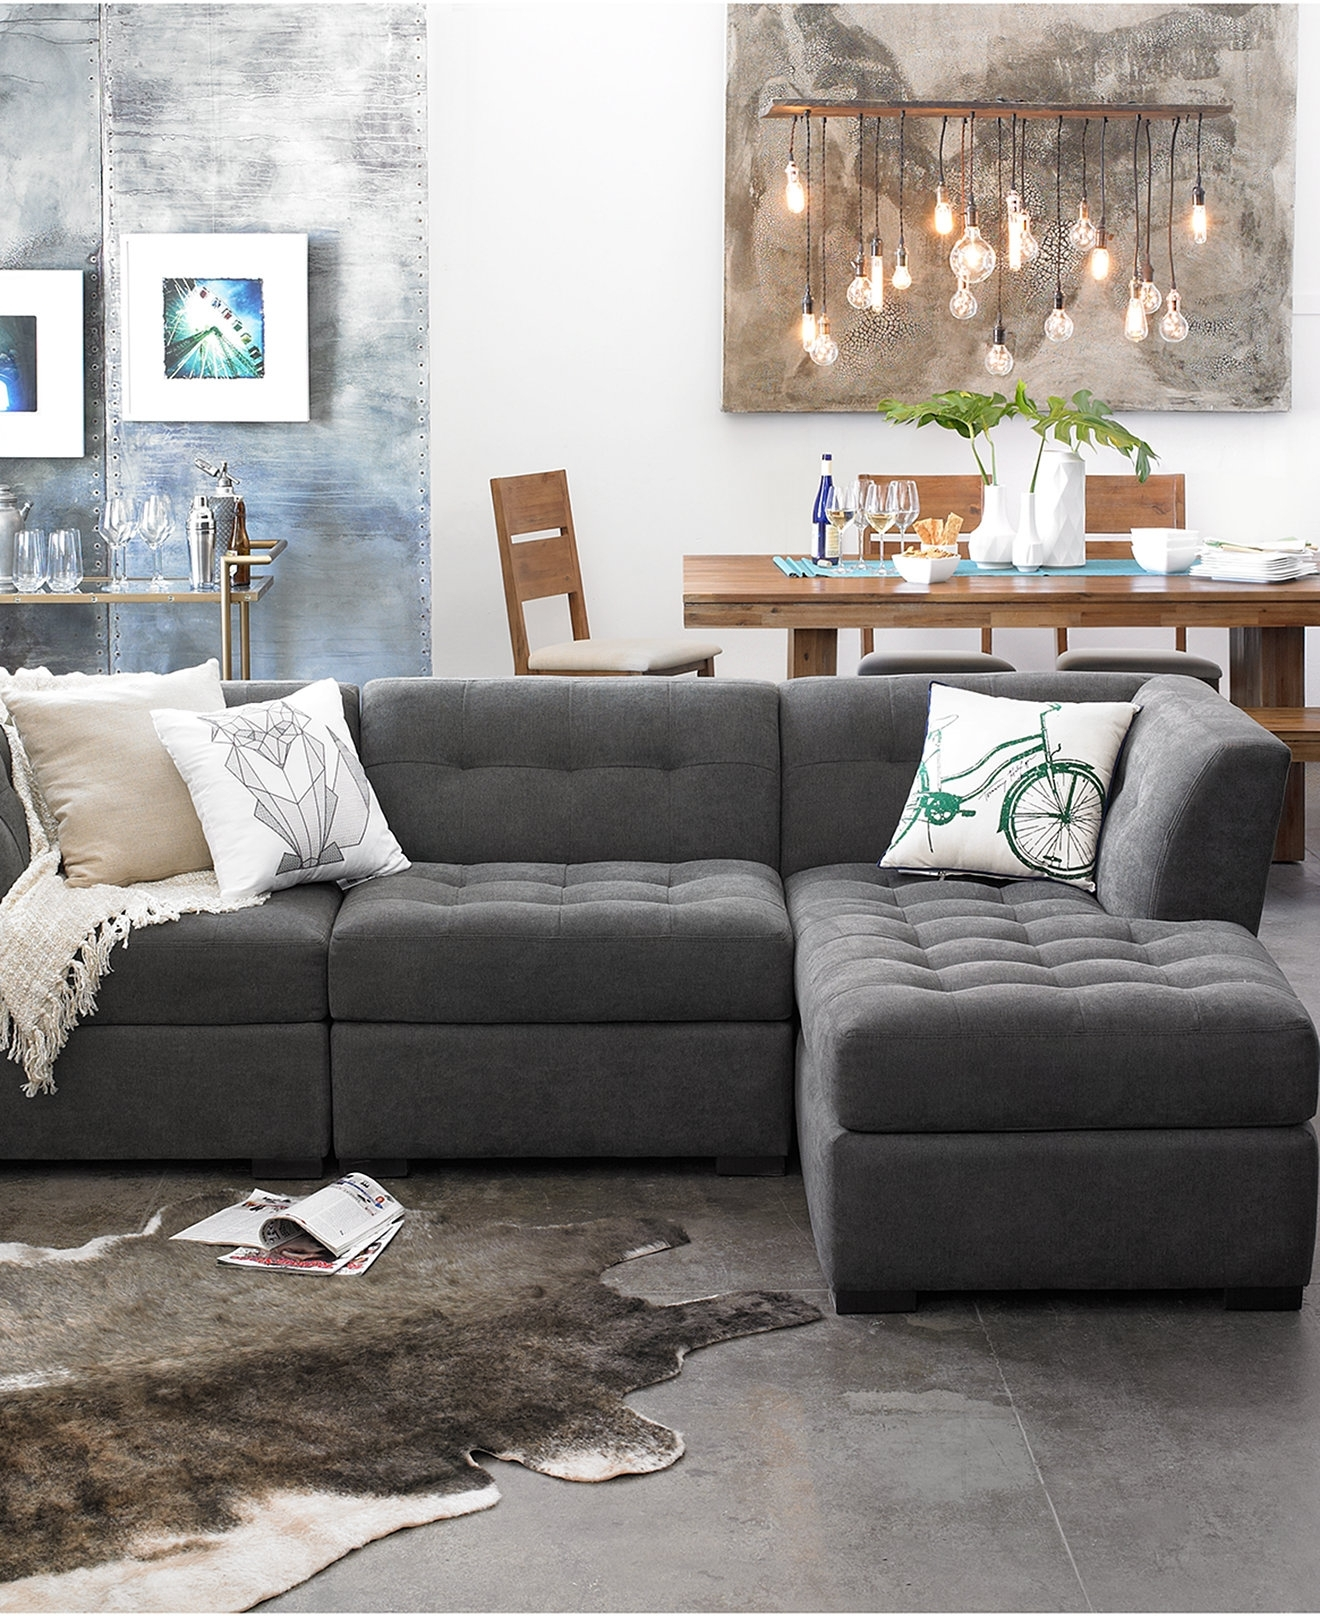 Modular Sectional Sofa Furniture Ashley Piece Costco Canada Pieces Throughout Canada Sectional Sofas For Small Spaces (Image 5 of 10)